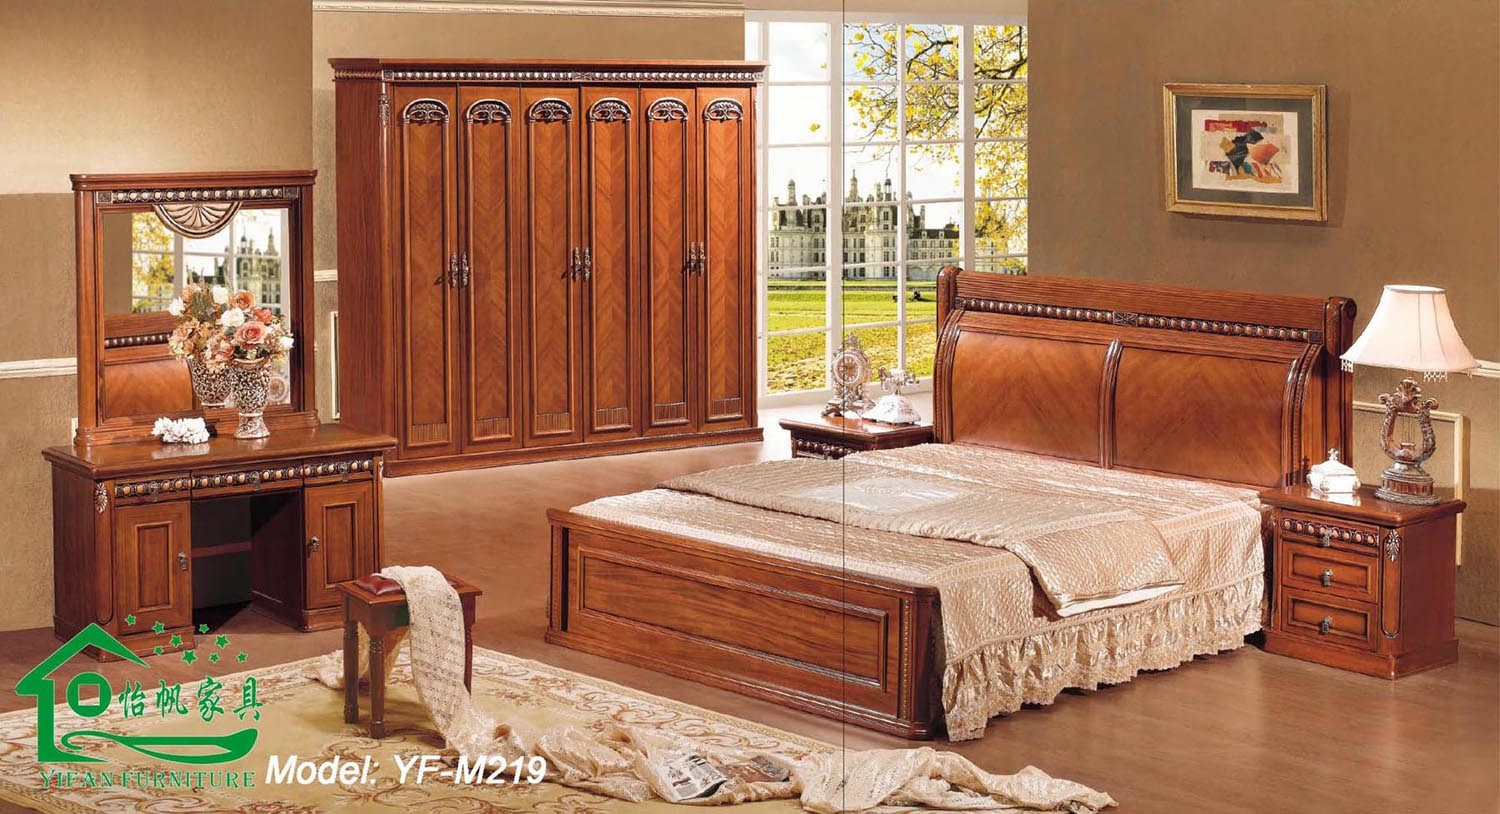 Superb Bedroom Sets Wooden Bedroom Furniture Sets Hotel Furniture Restaurant. Bedroom  Sets Wooden Bedroom Furniture Sets Hotel Furniture Restaurant.